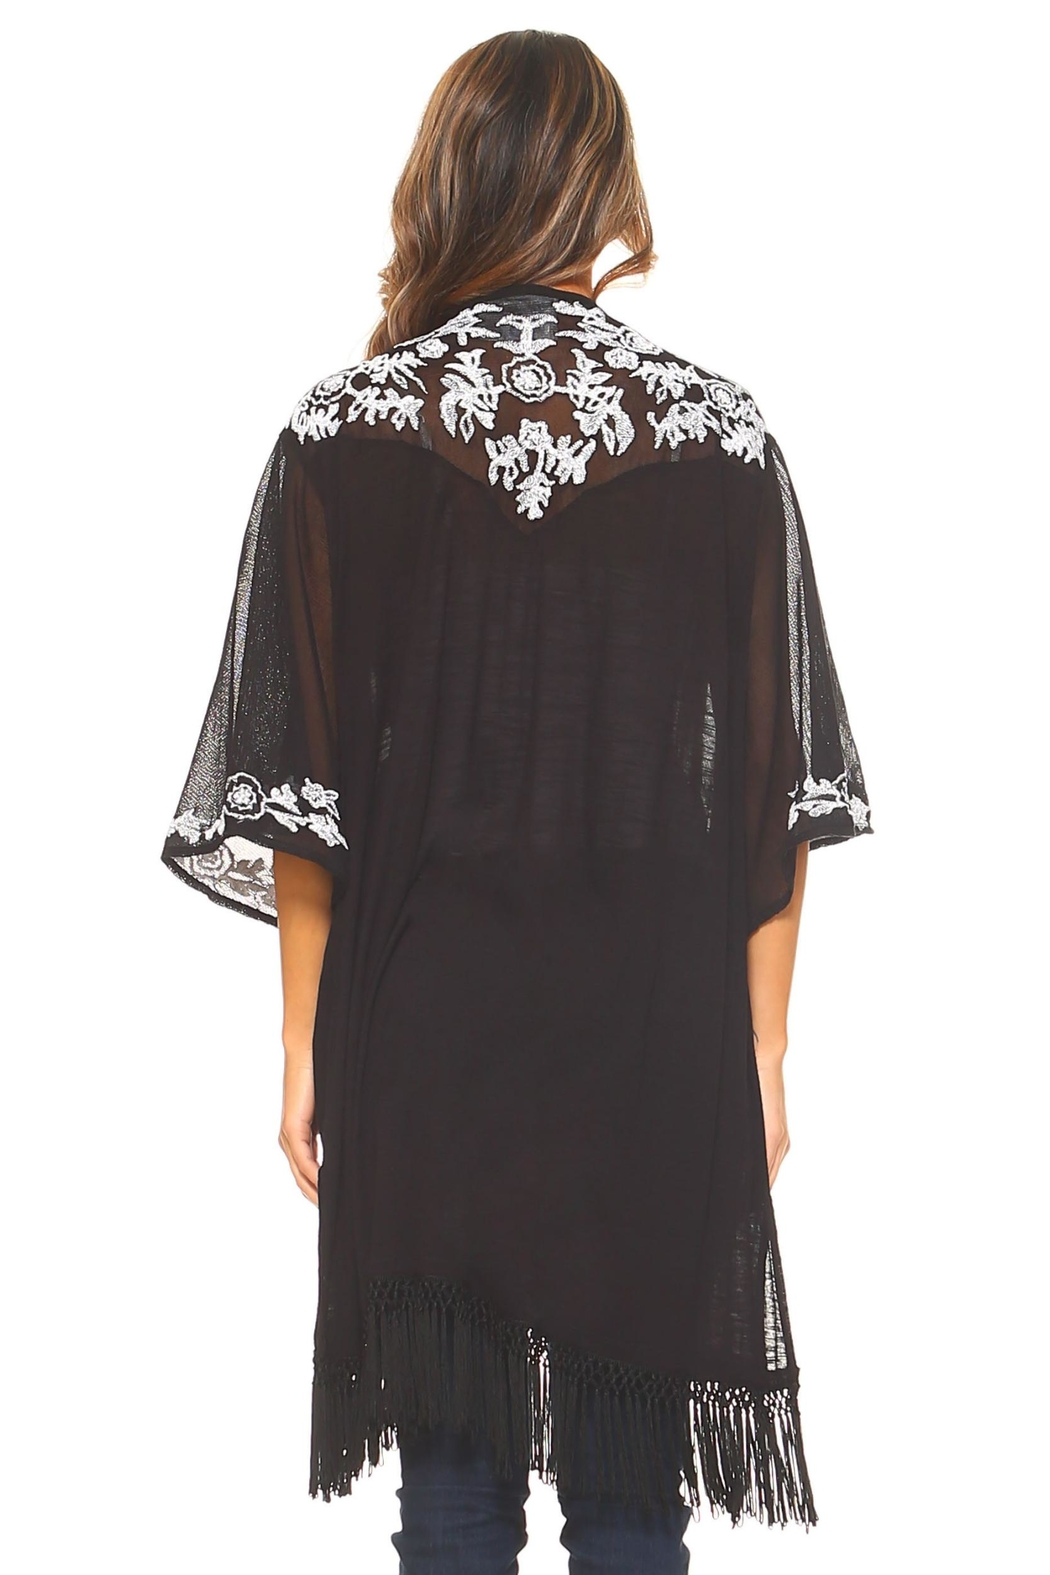 Sloane Rouge Embroidered Long Cardigan - Back Cropped Image